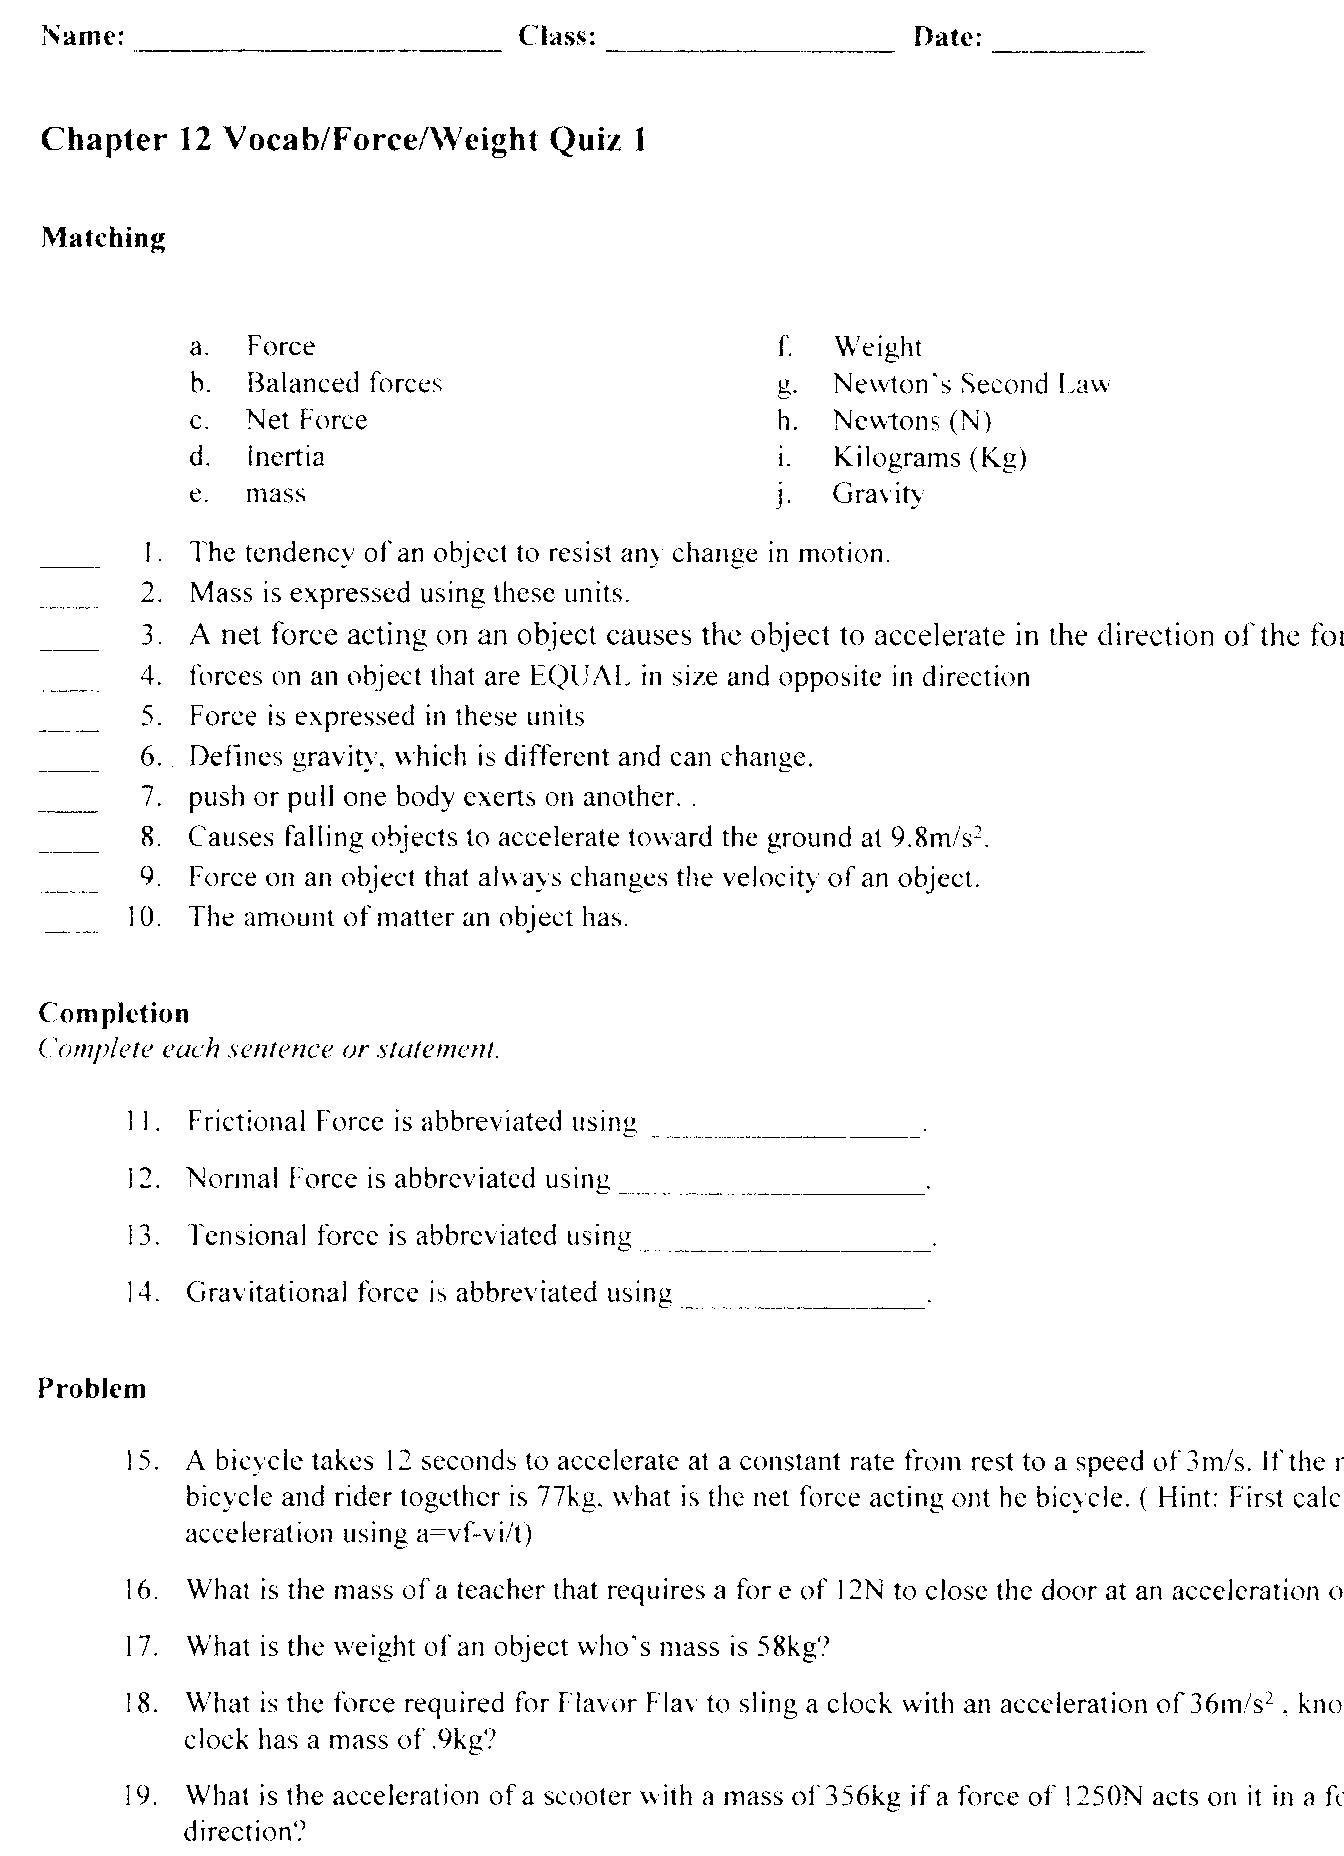 worksheet Momentum Problems Worksheet quia class page riverspscience worksheetsforce quiz side 1 force 2 momentum problems